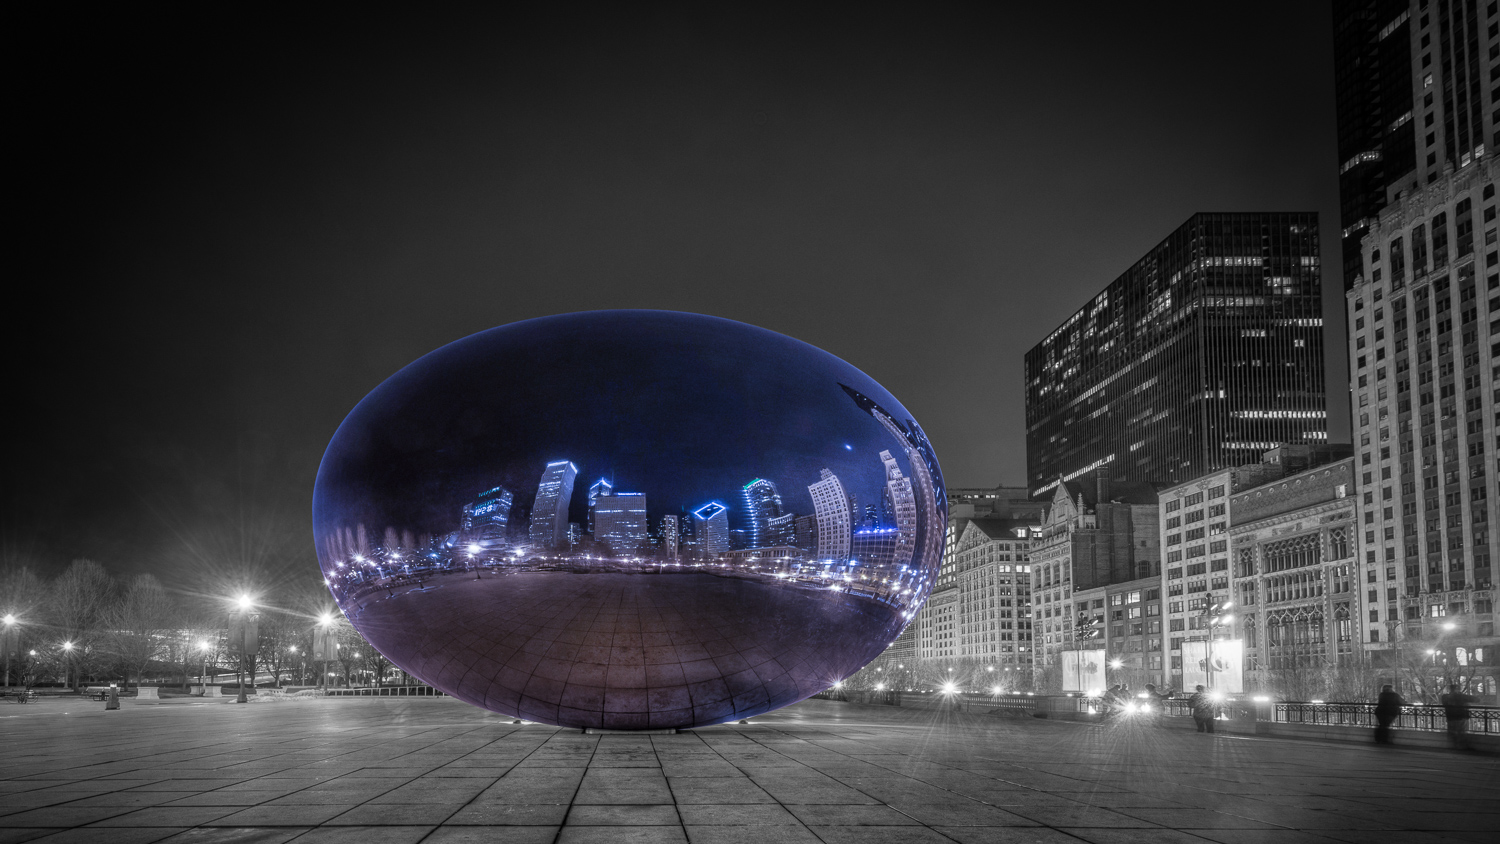 Chicago the Bean - Learn How to Use the Strength of Selective Color